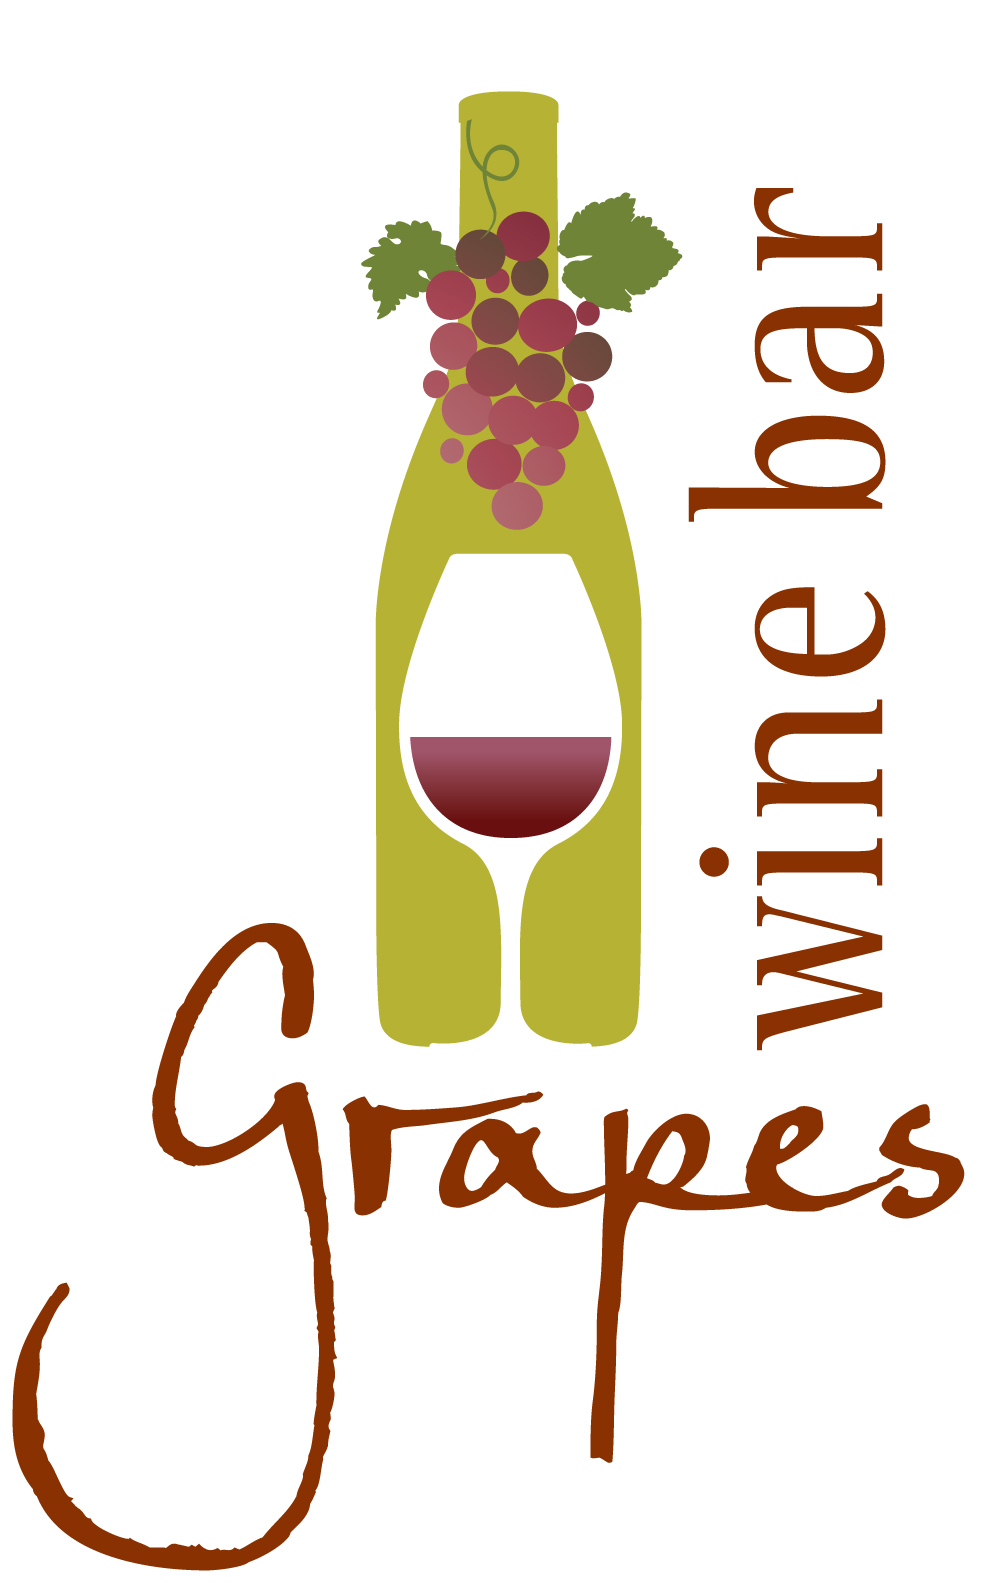 grapes-logo.jpg